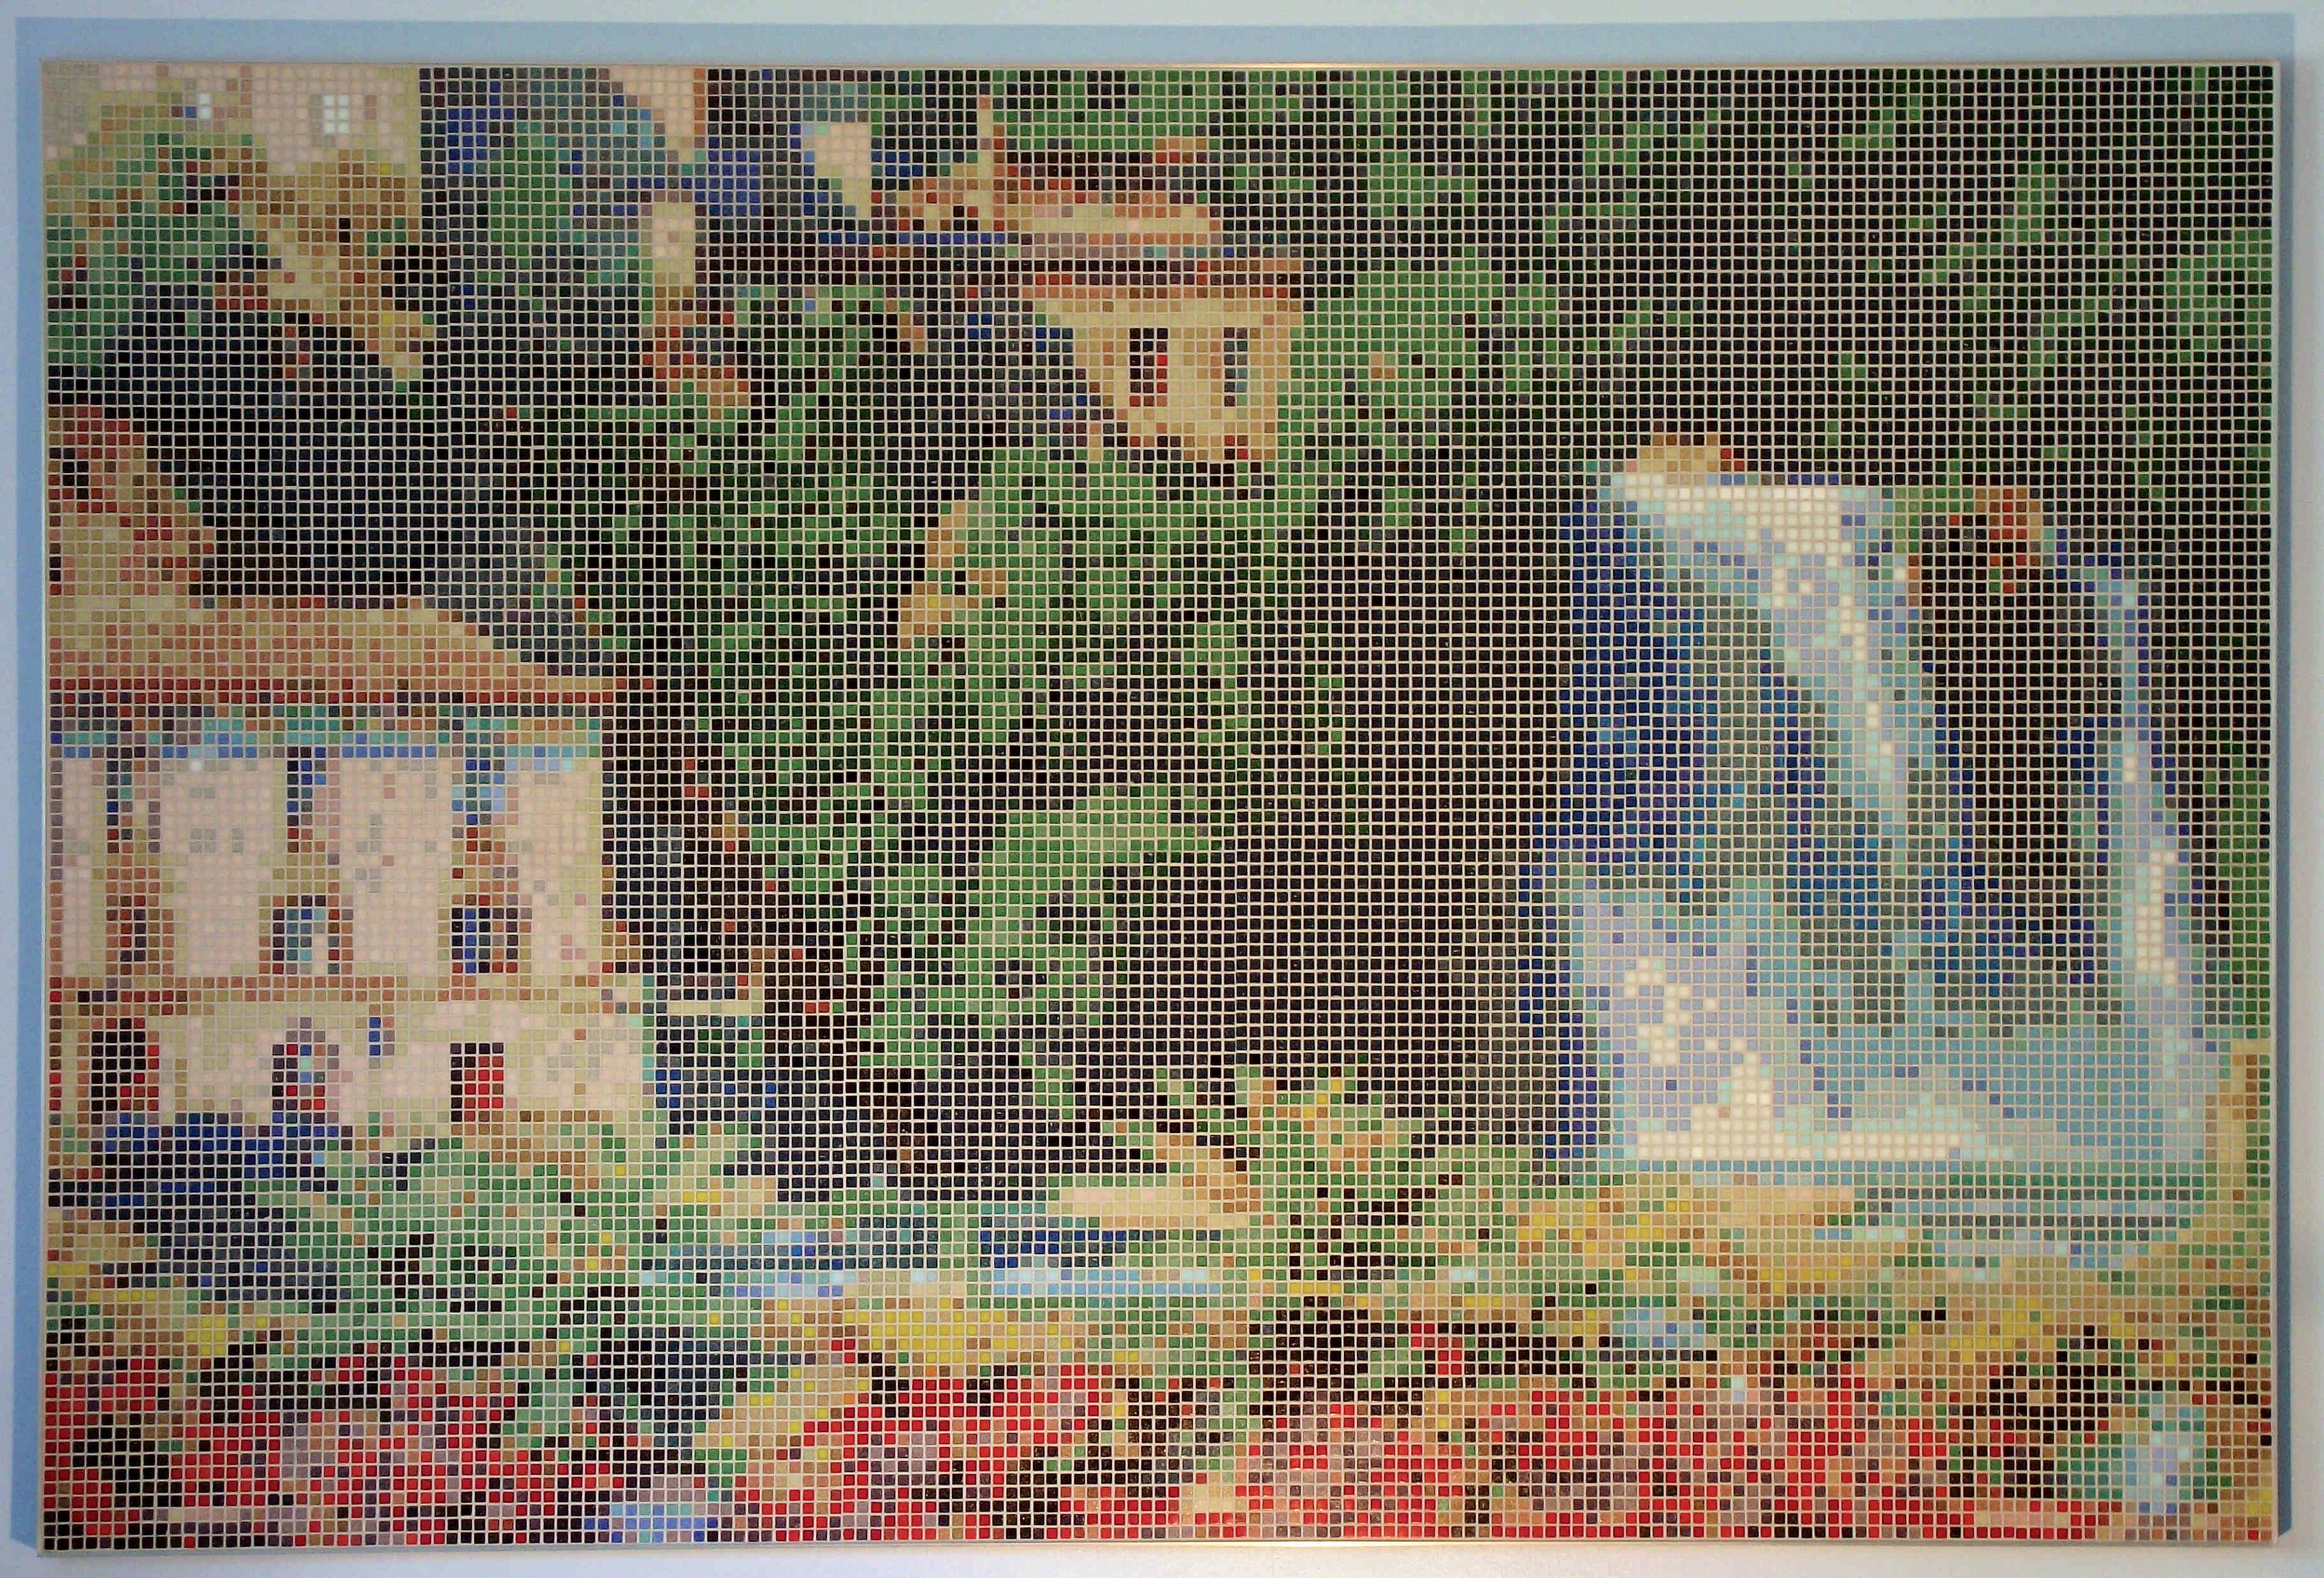 Italian Waterfall (Isola Liri) Framed Mosaic